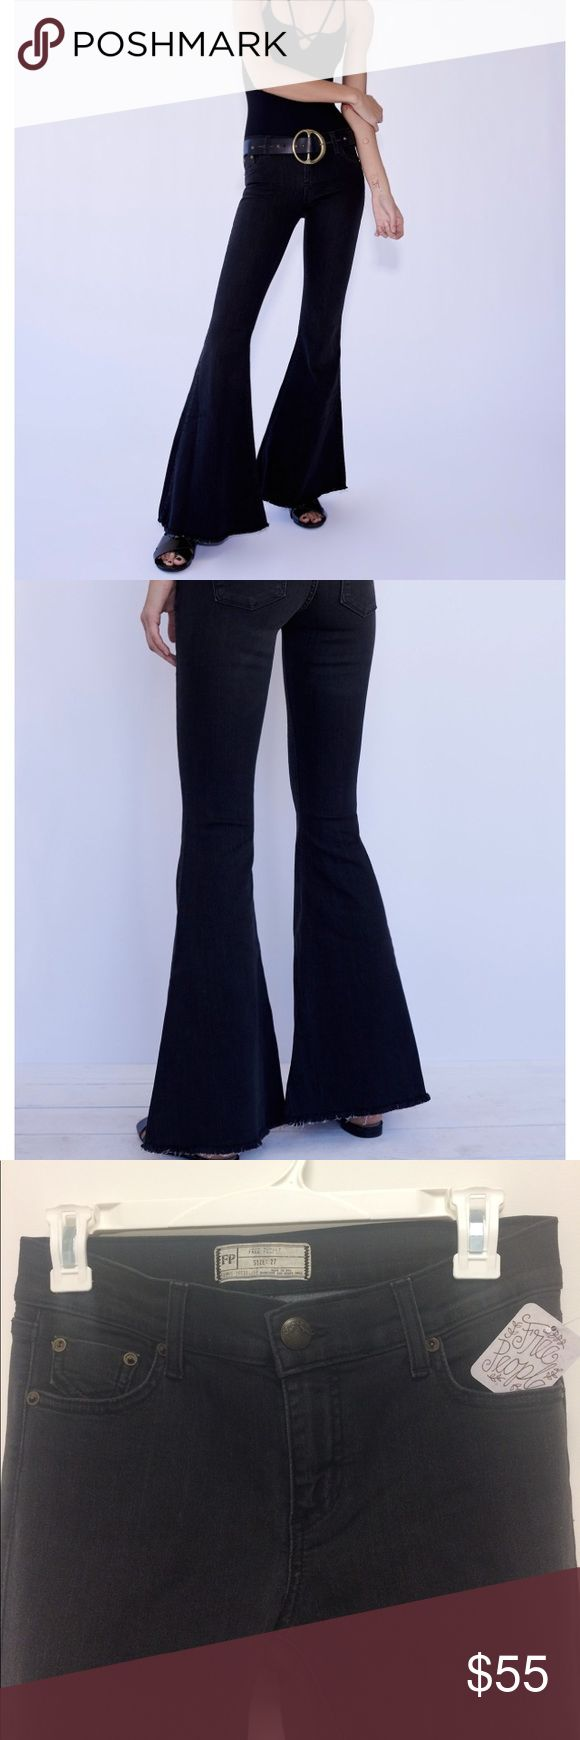 """Free People Denim Super Flare Pants Size 27, Regular Length, Colin Black Free People Flare jeans.  These exaggerated denim flared jeans are American made, and feature a frayed hem and five pocket design. Medium rise zip fly with button closure.  Sizing Tip: This style runs snug but has stretch so it loosens with wear. Rise 8.5"""", 42"""" in length from waistband to fray hem. Free People Jeans Flare & Wide Leg"""